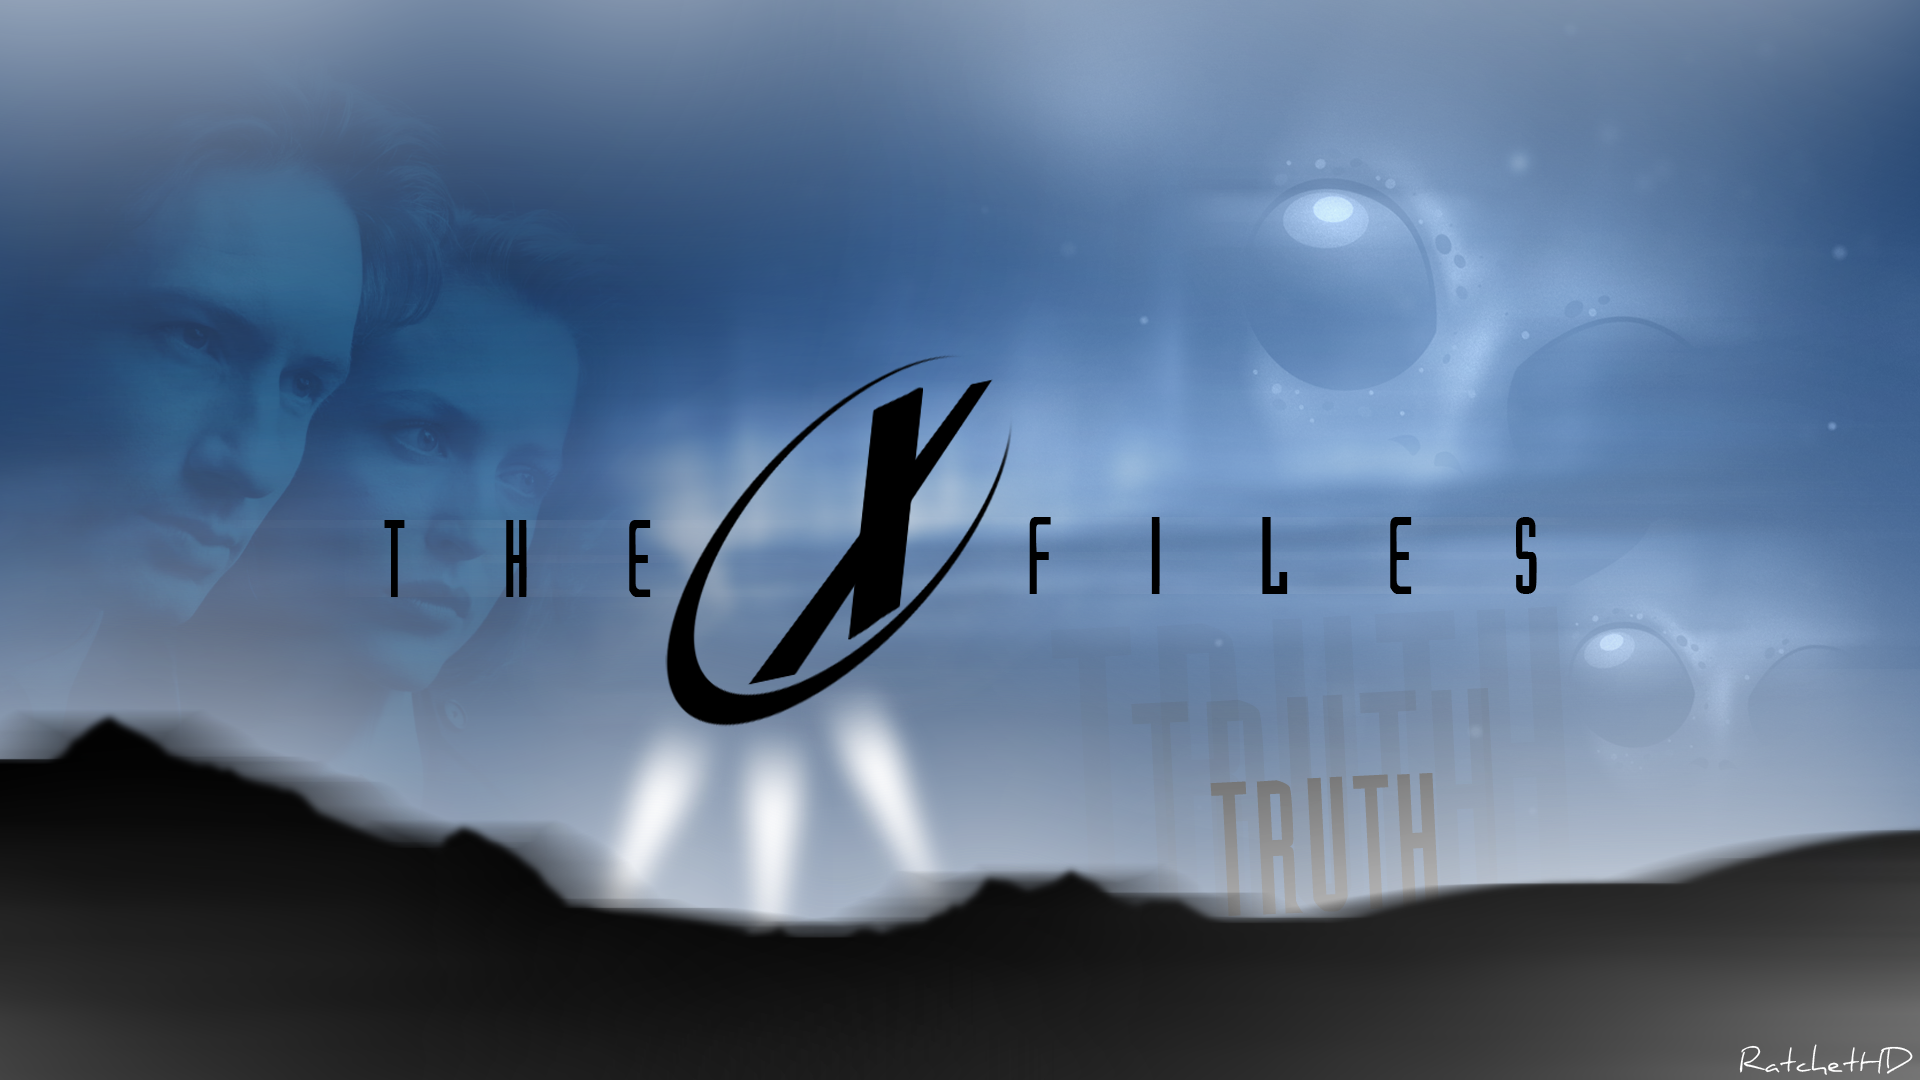 Wallpaper iphone x files -  Iphone Wallpaper The X Files By Ratchethd On Deviantart